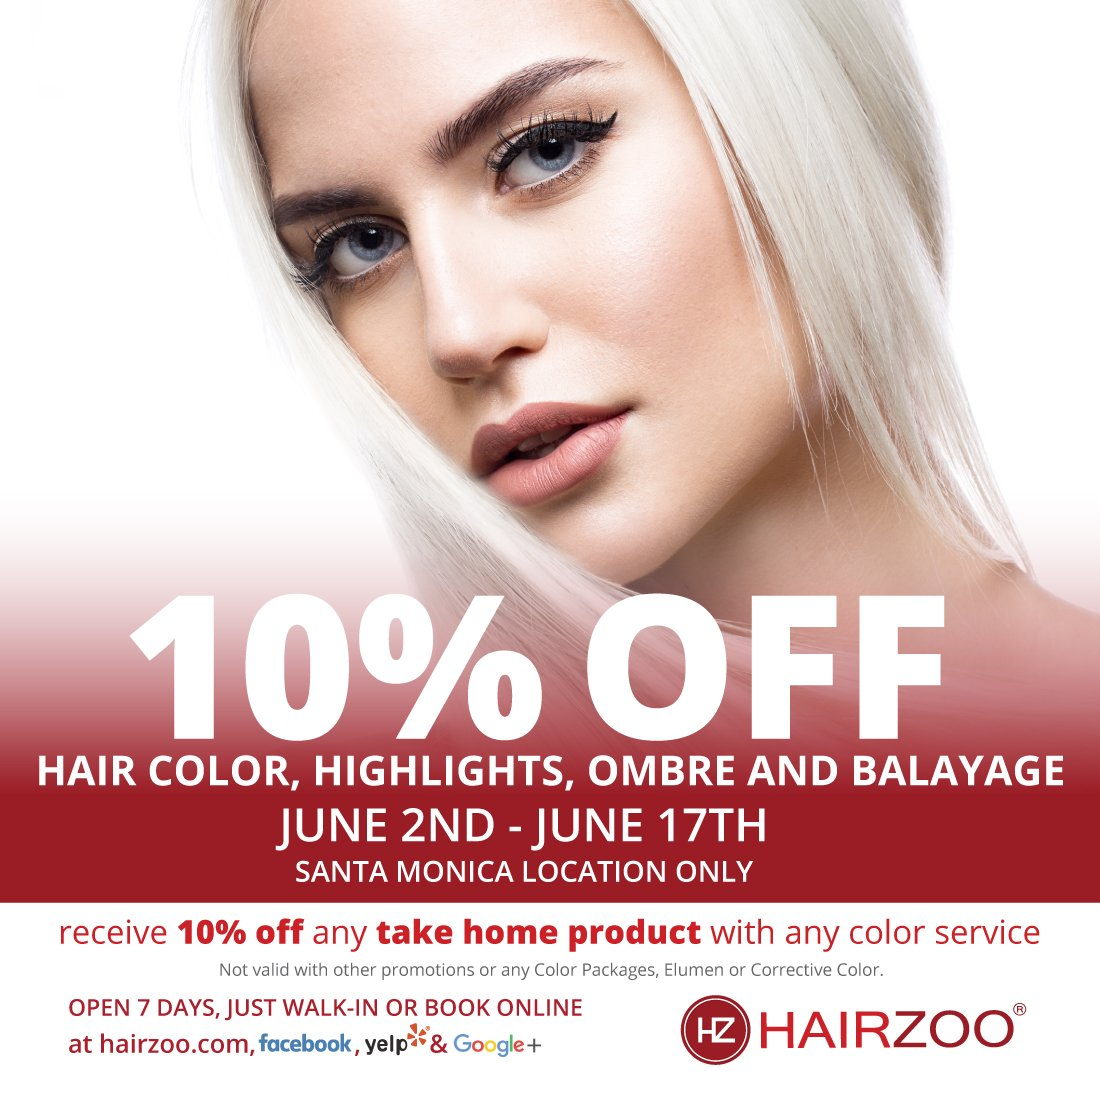 Hairzoo Hairzoo Twitter